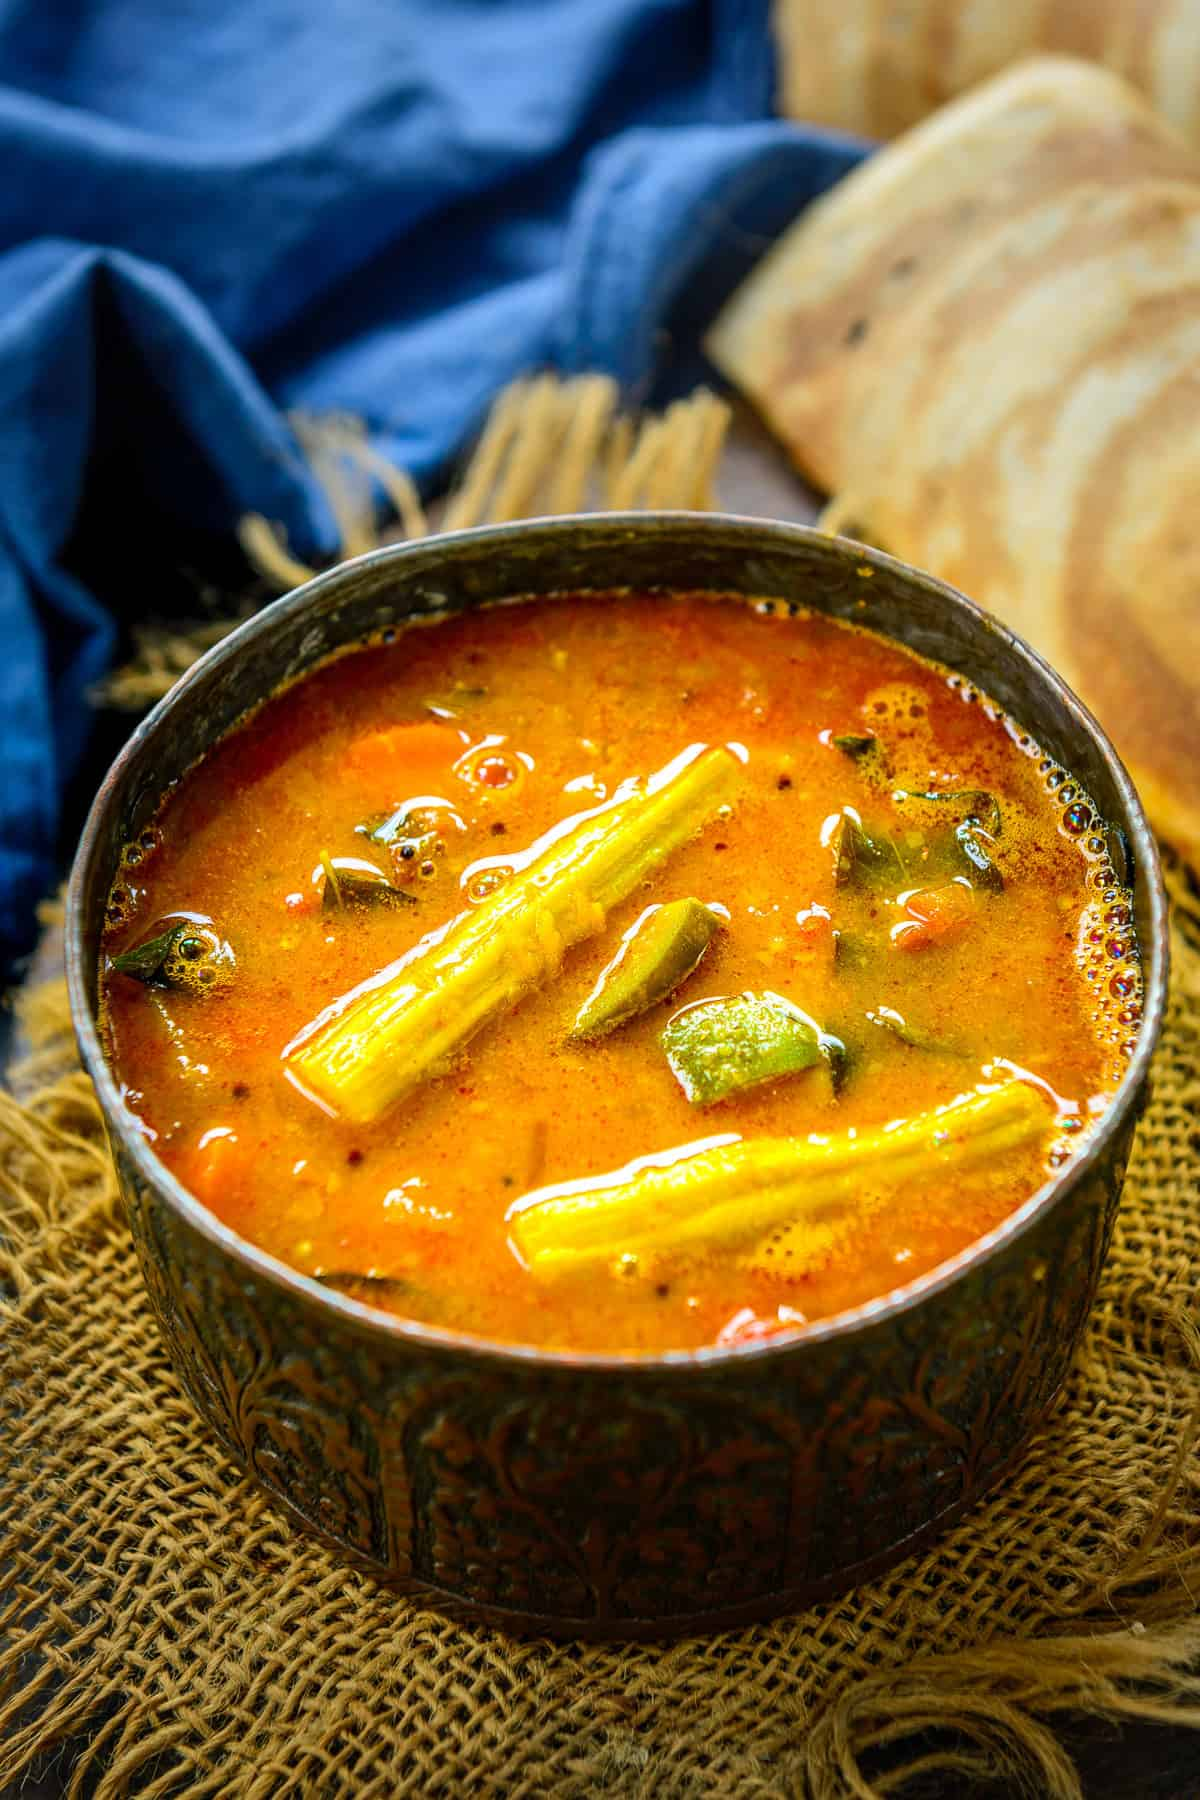 Sambar served in a bowl.